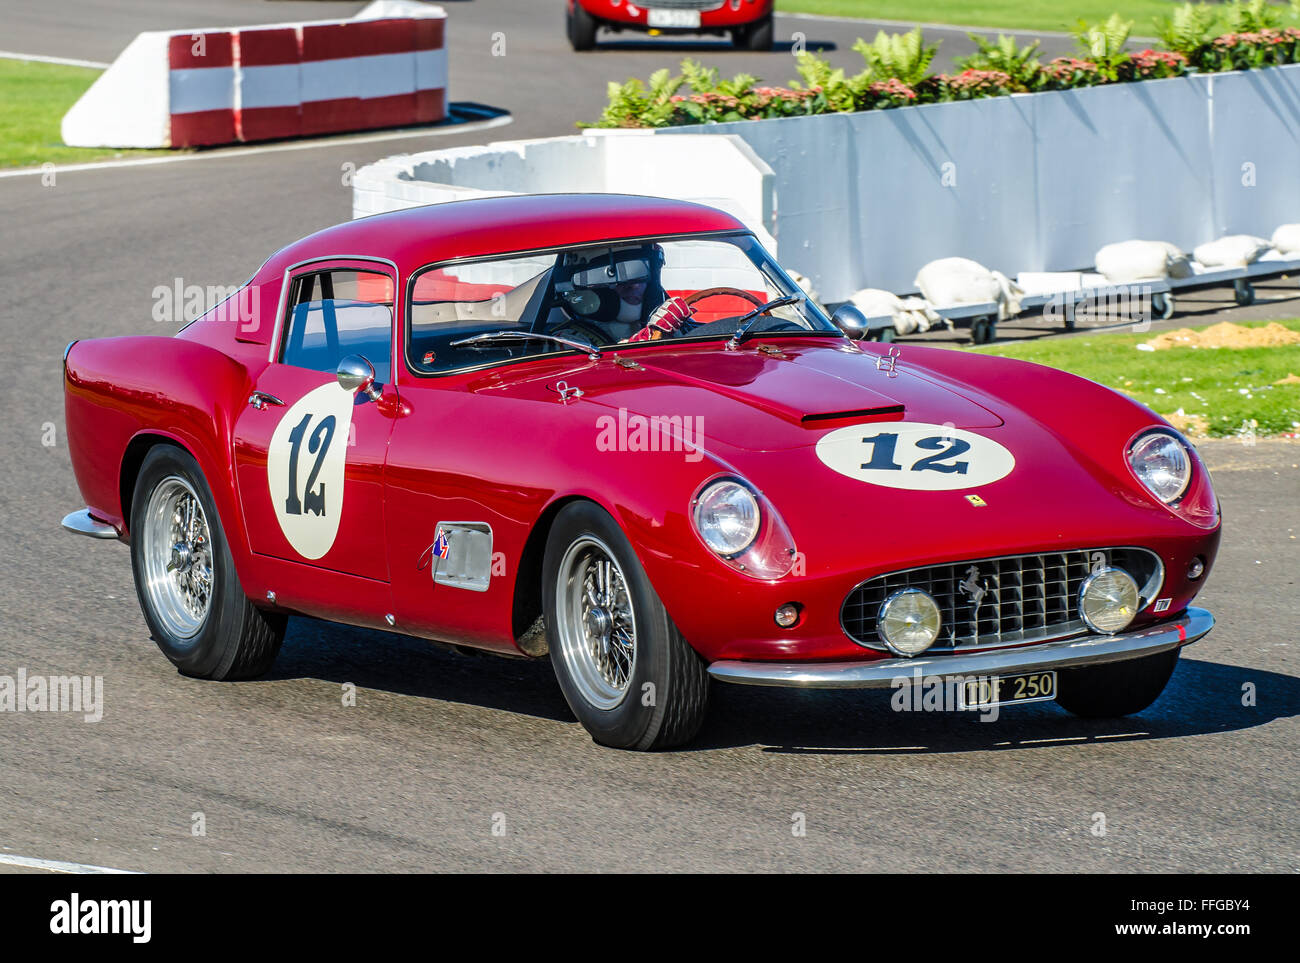 1958 ferrari 250 gt tour de france is owned by steve boultbee brooks stock photo 95632296 alamy. Black Bedroom Furniture Sets. Home Design Ideas